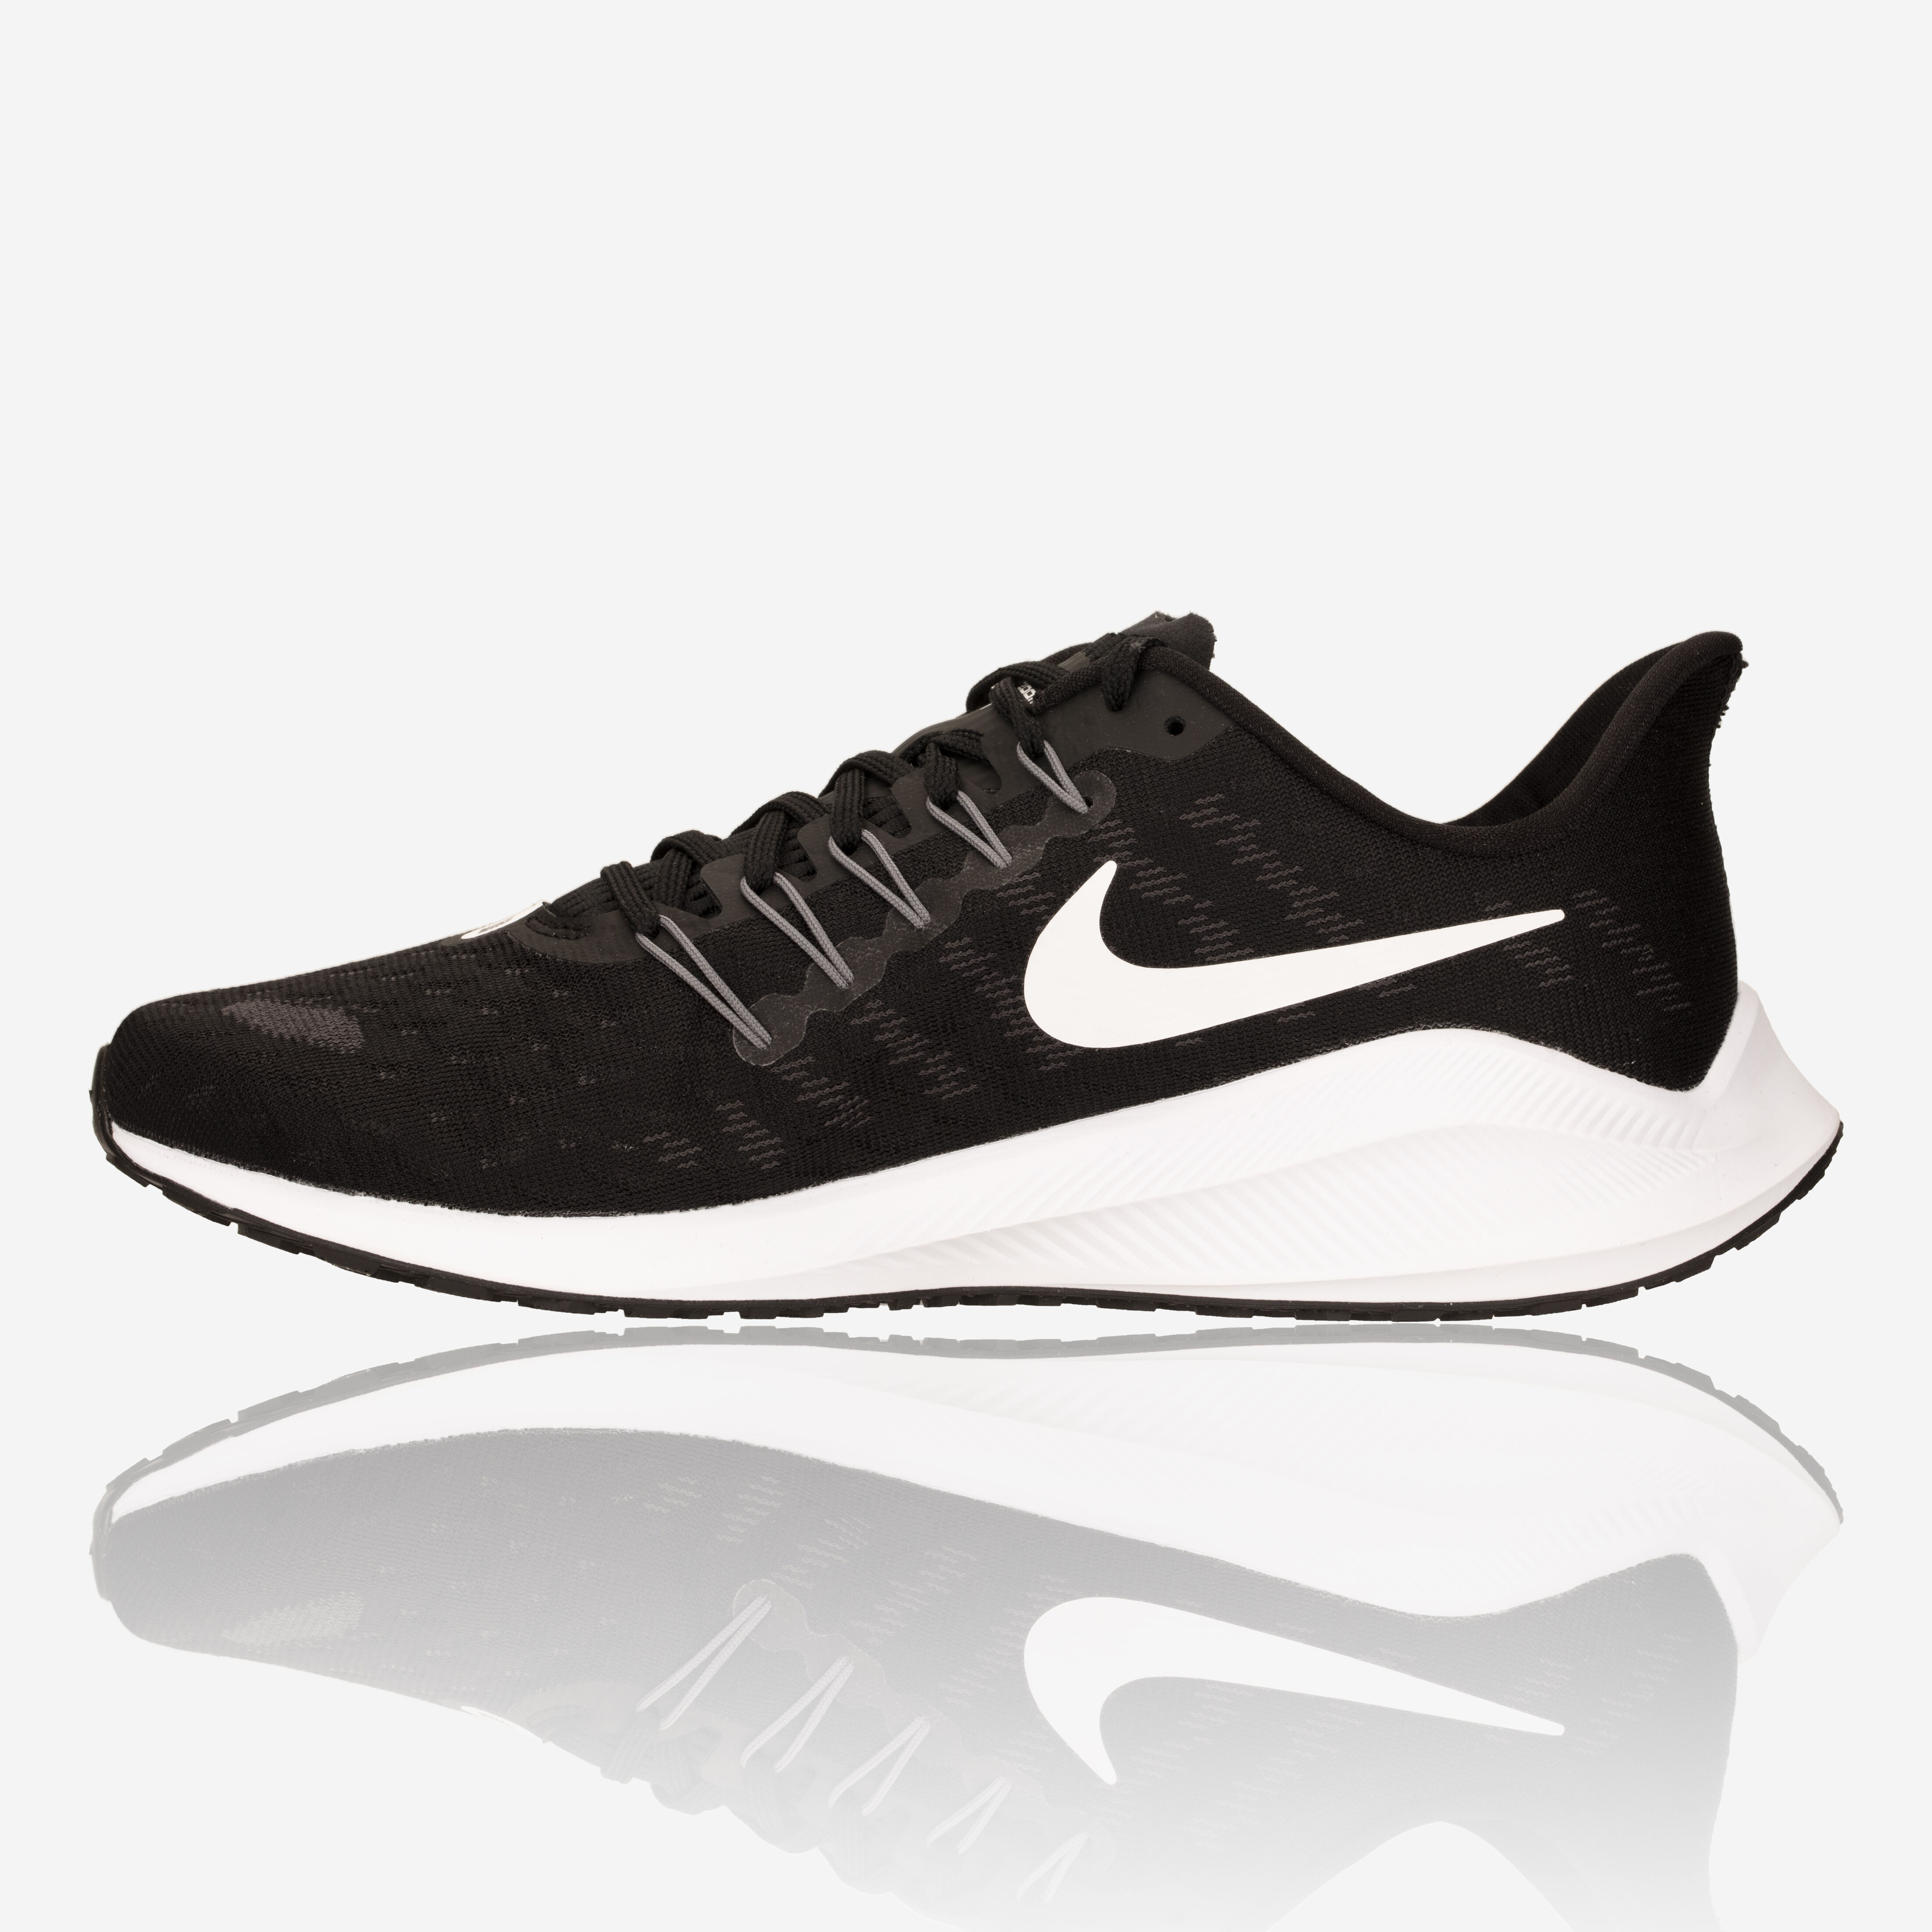 f6855a82e9ae Nike Air Zoom Vomero 14 shoes 2019 RUNKD online running store